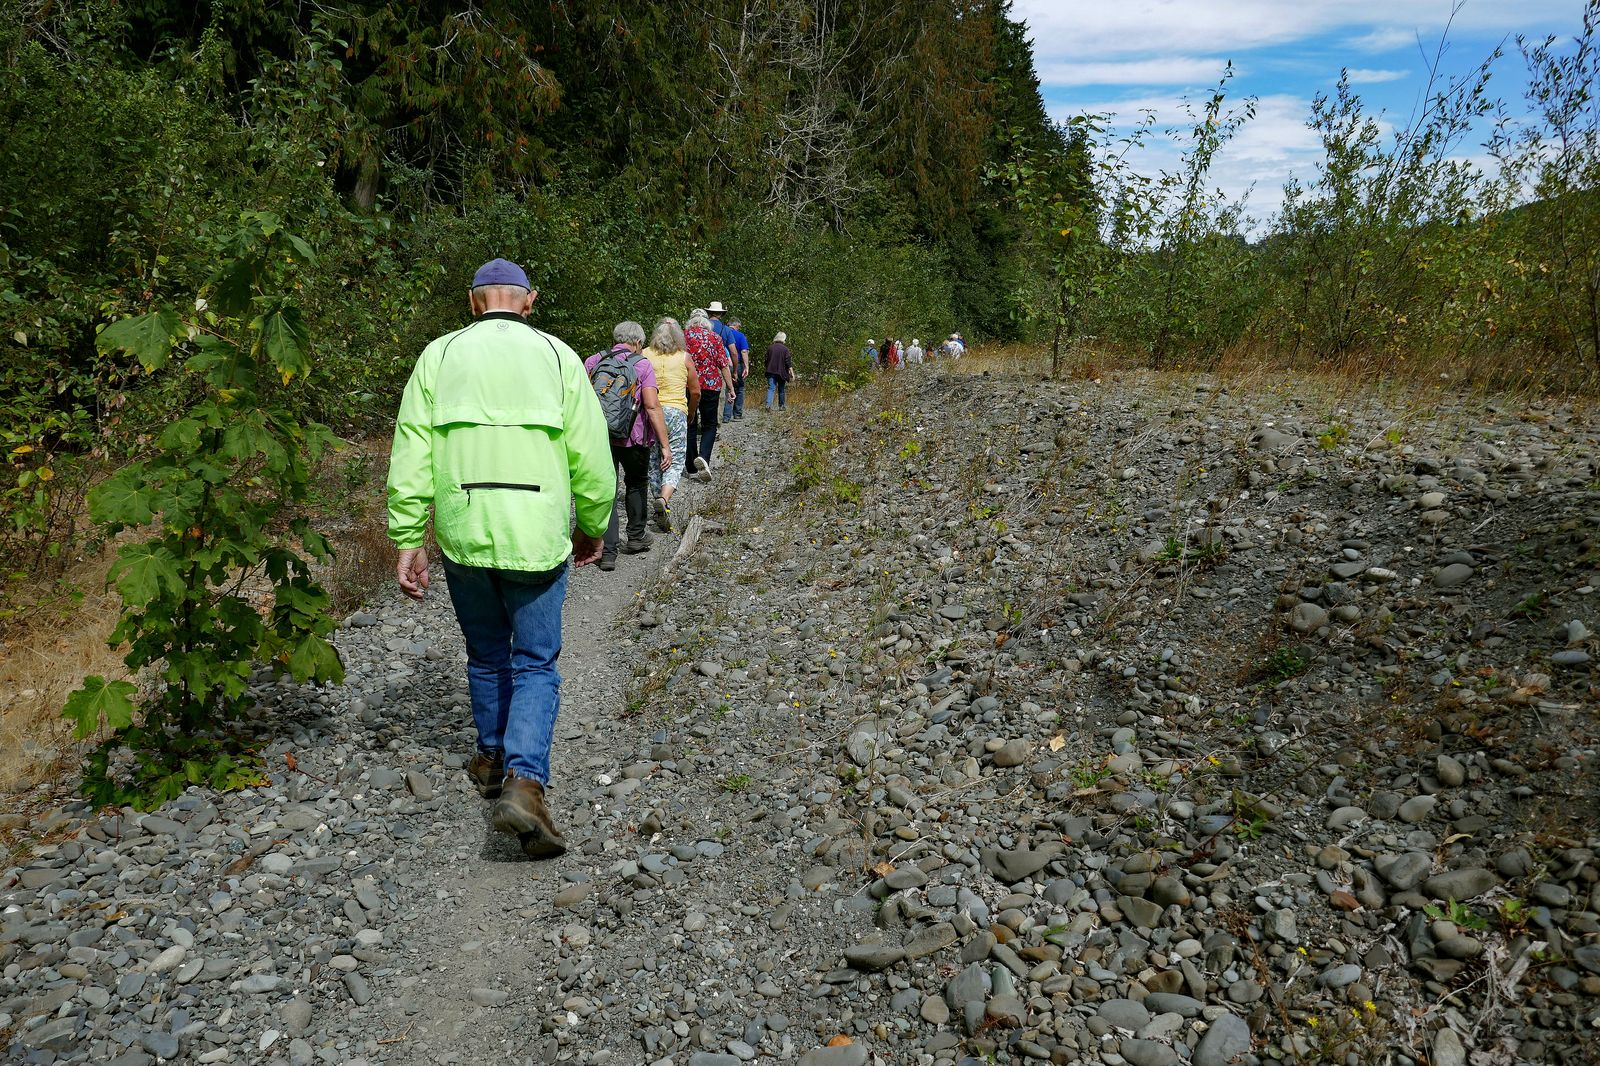 We head off to find the Elwha before it reaches the sea